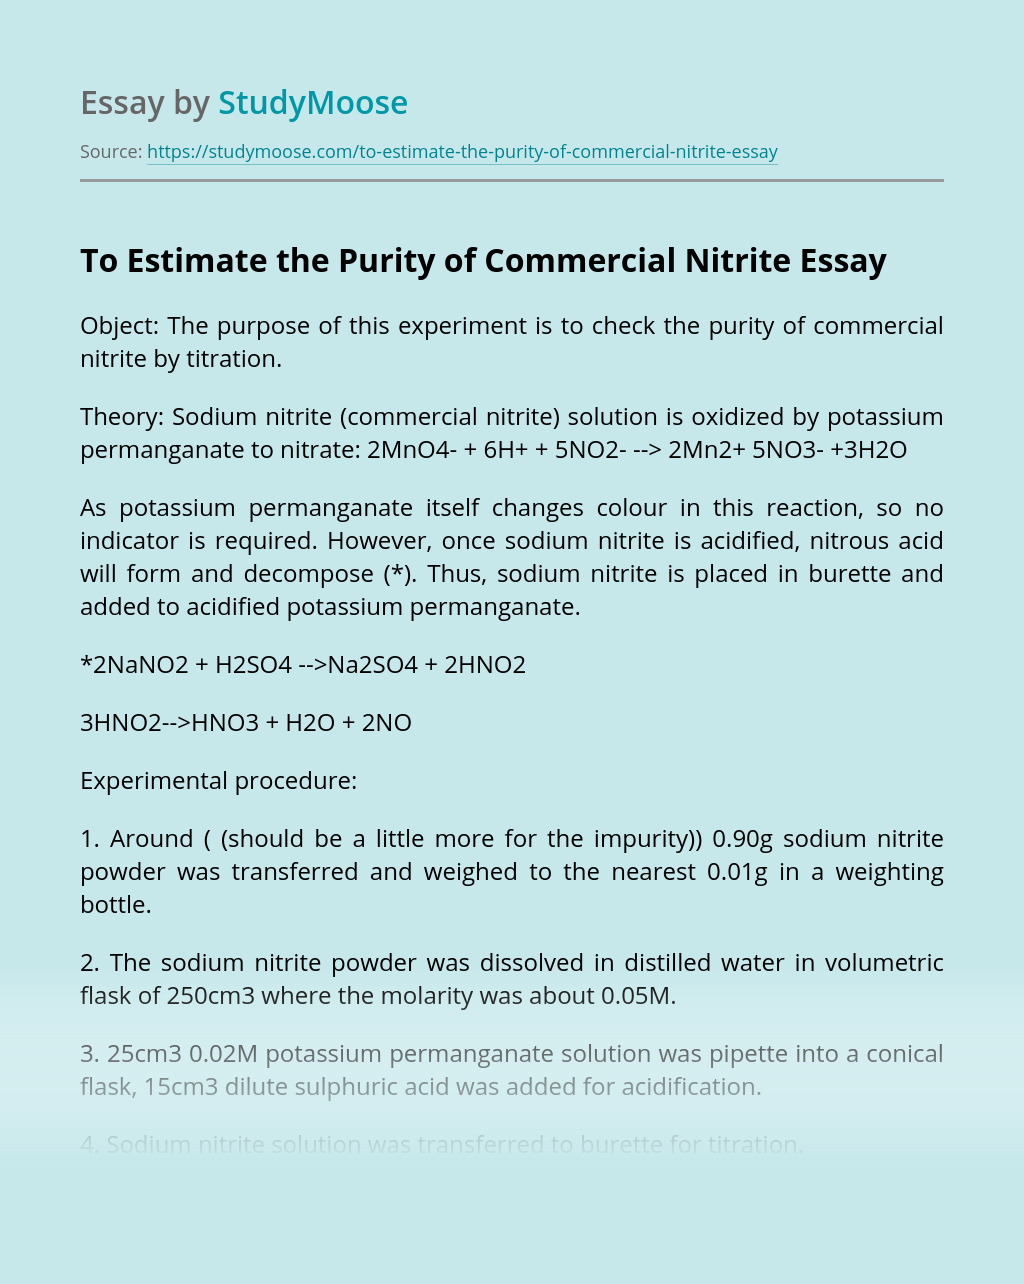 To Estimate the Purity of Commercial Nitrite